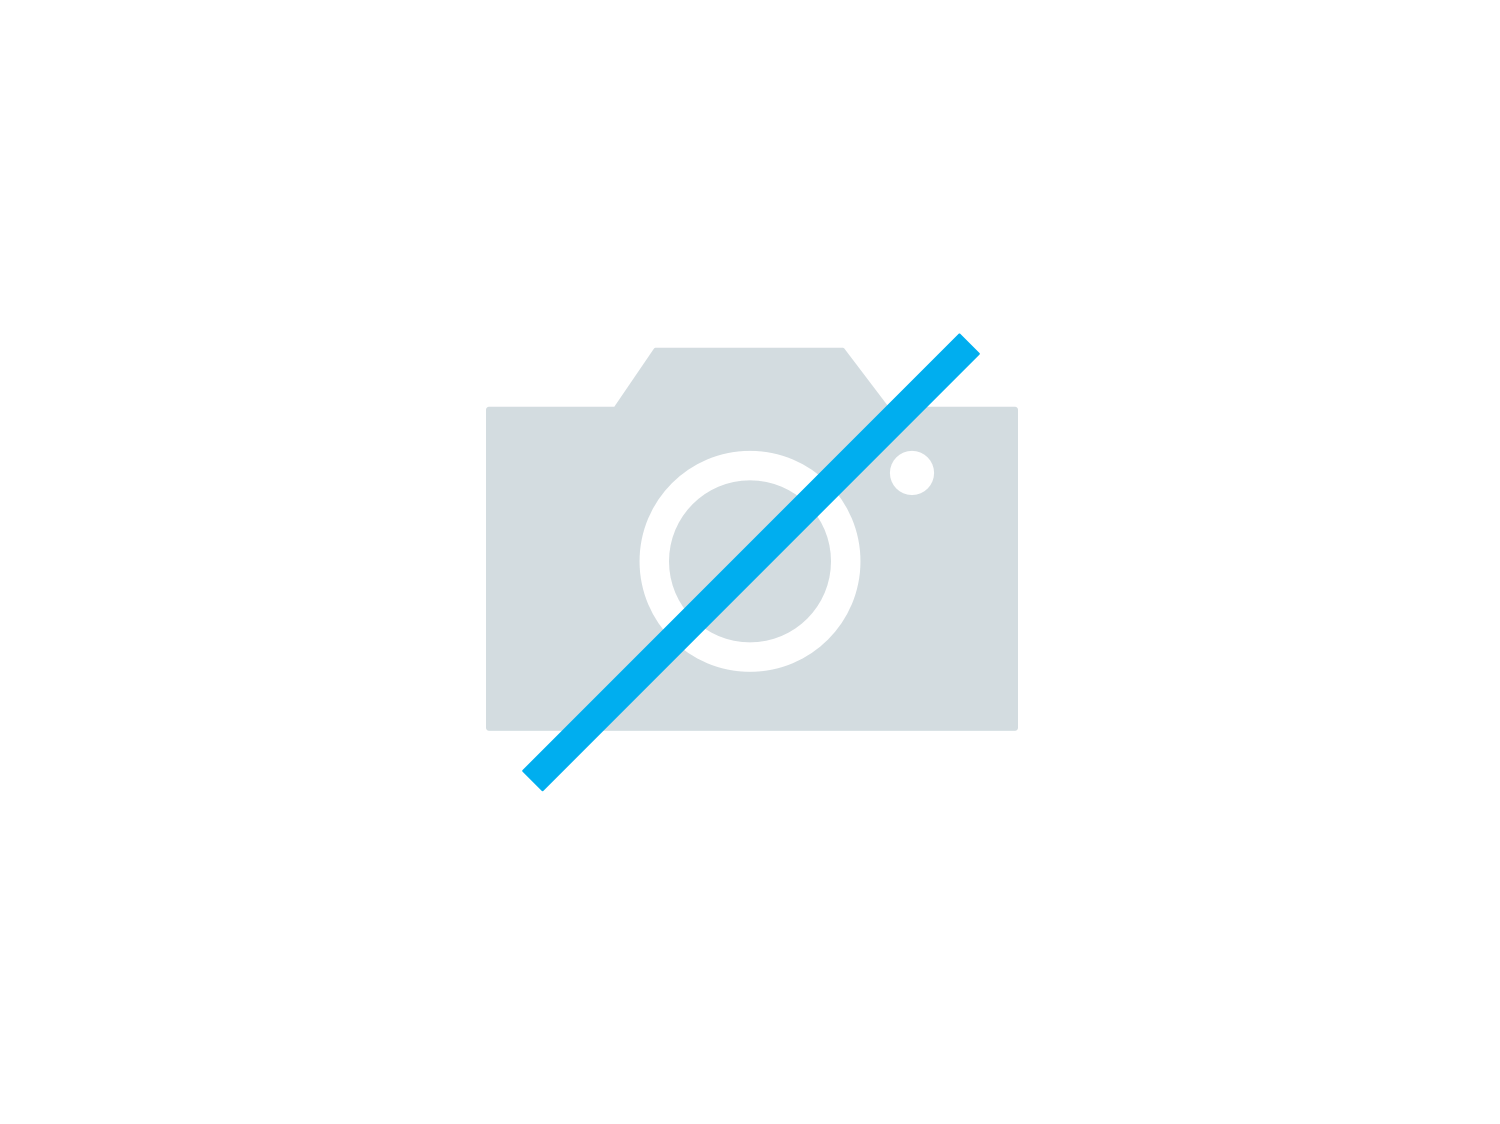 Badmat London 60x60cm sorbet